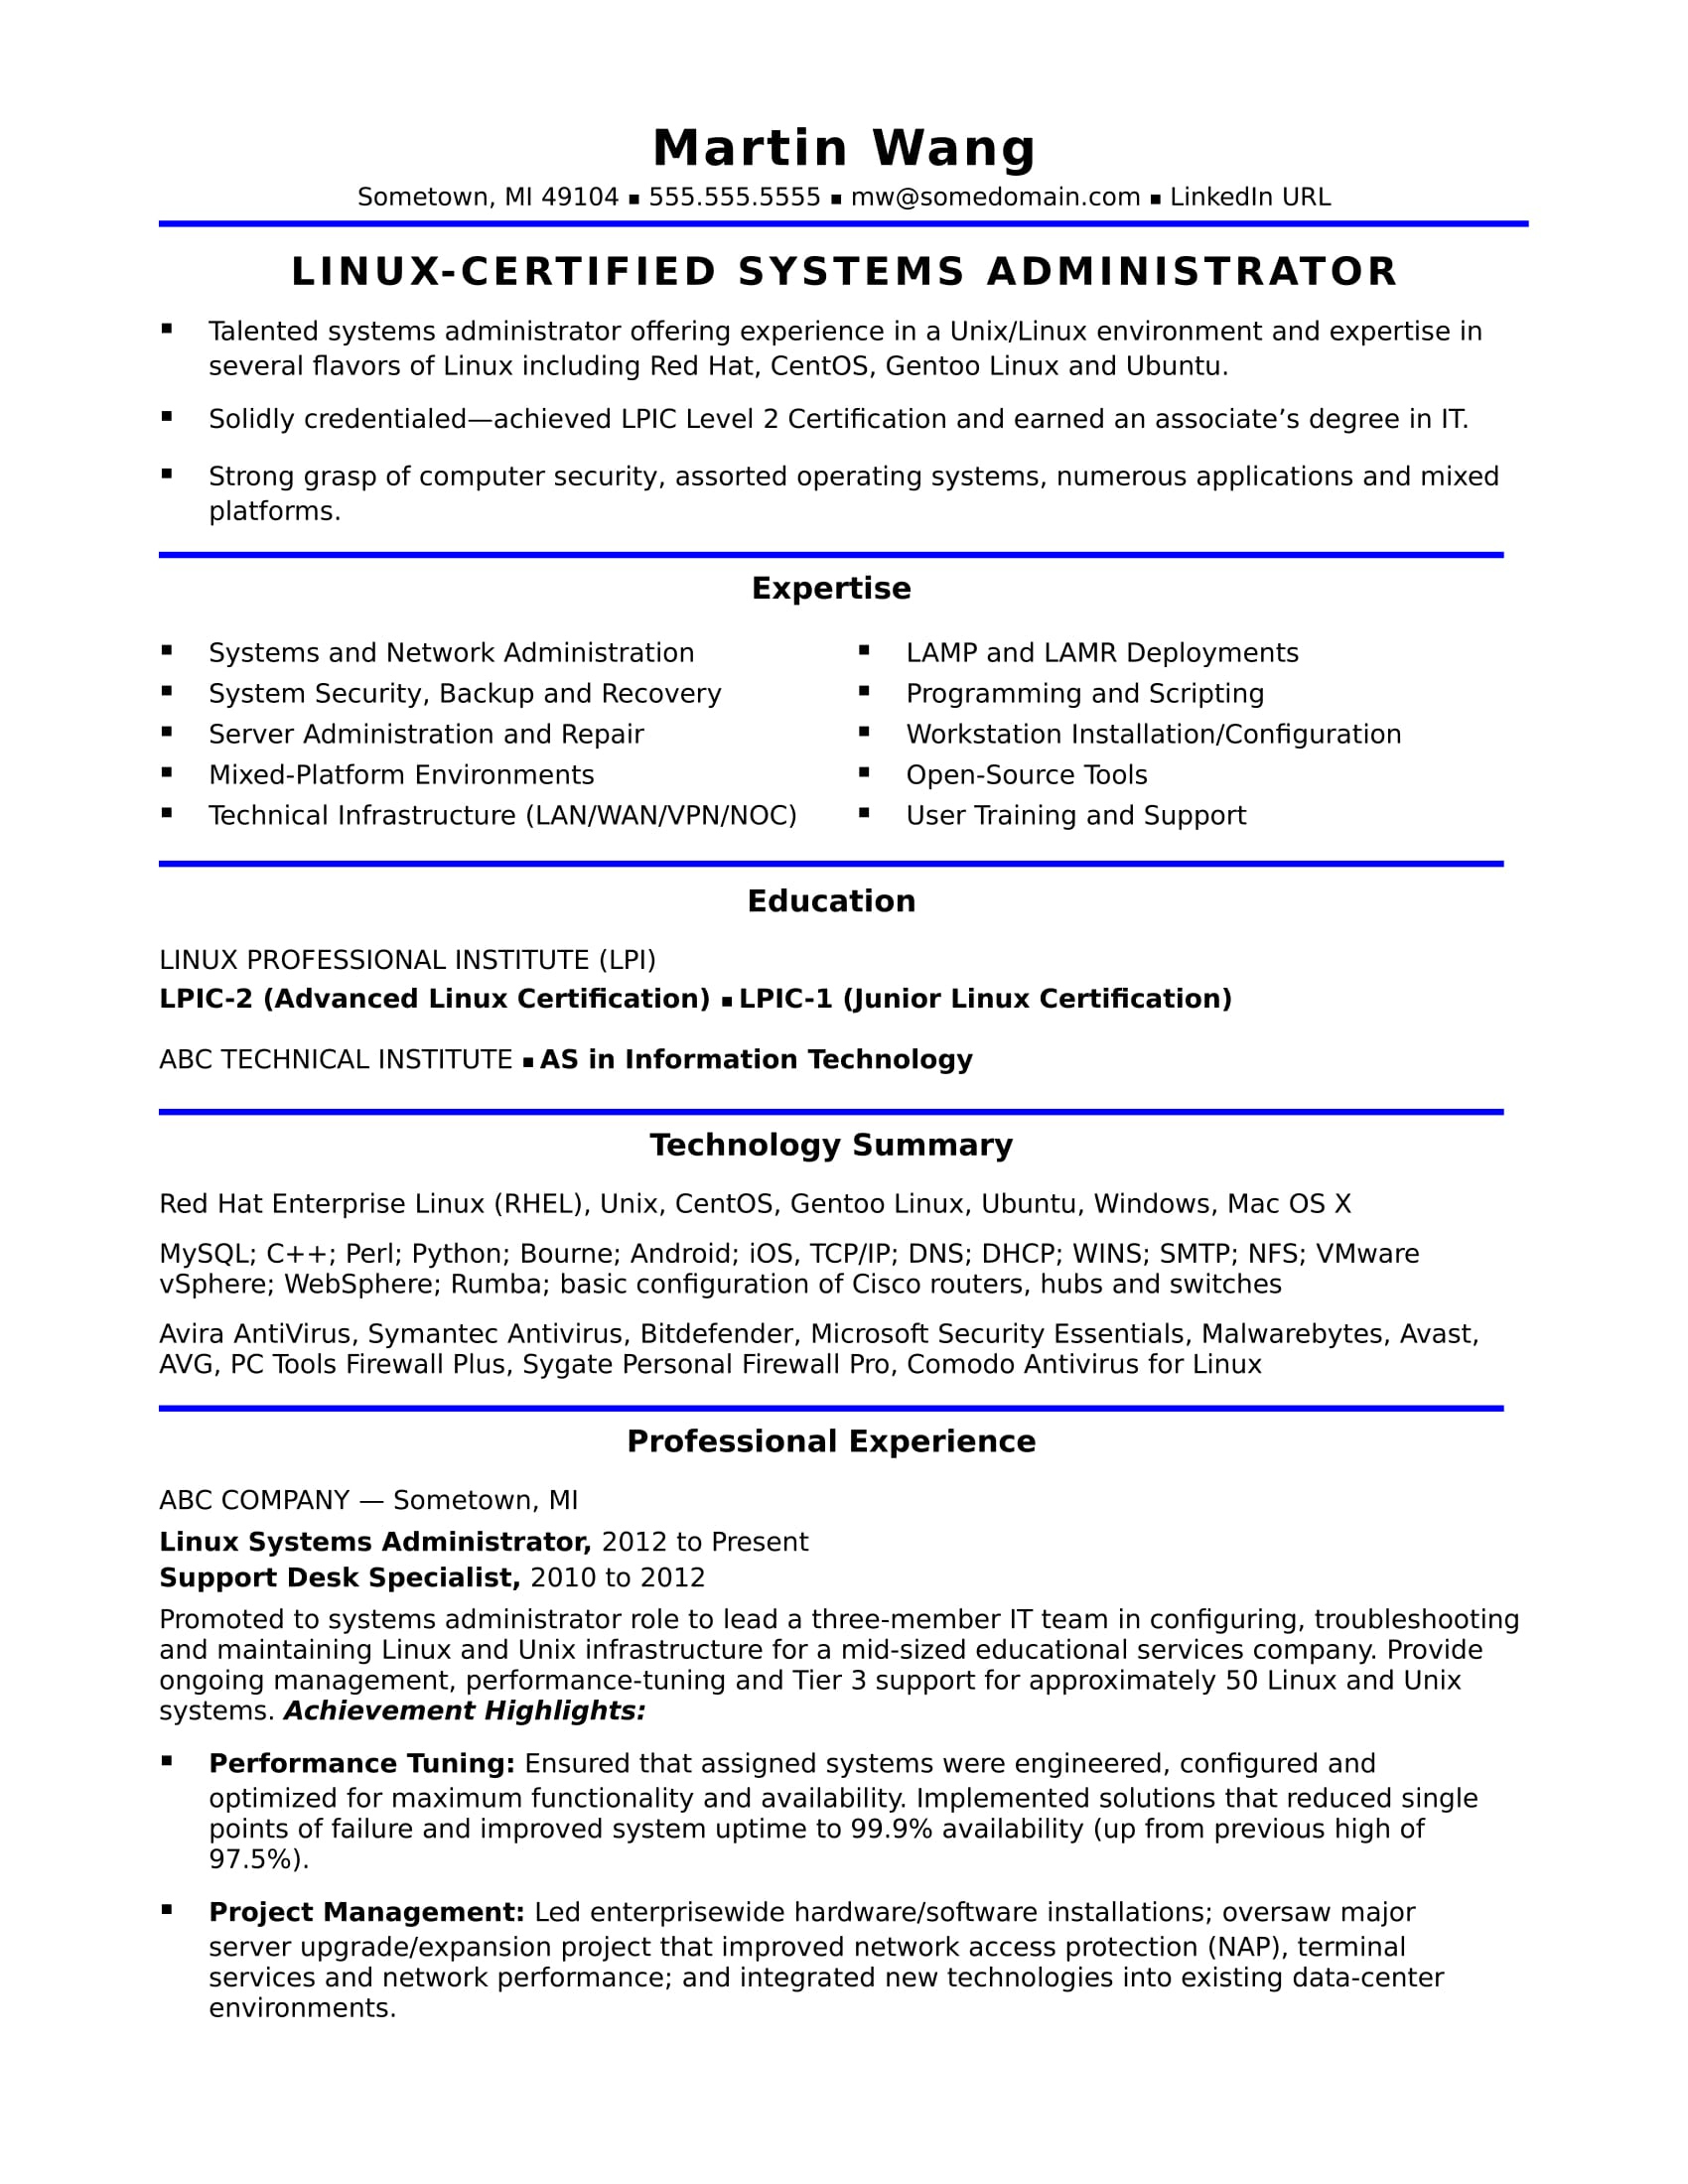 Amazing Sample Resume For A Midlevel Systems Administrator In Linux Administrator Resume